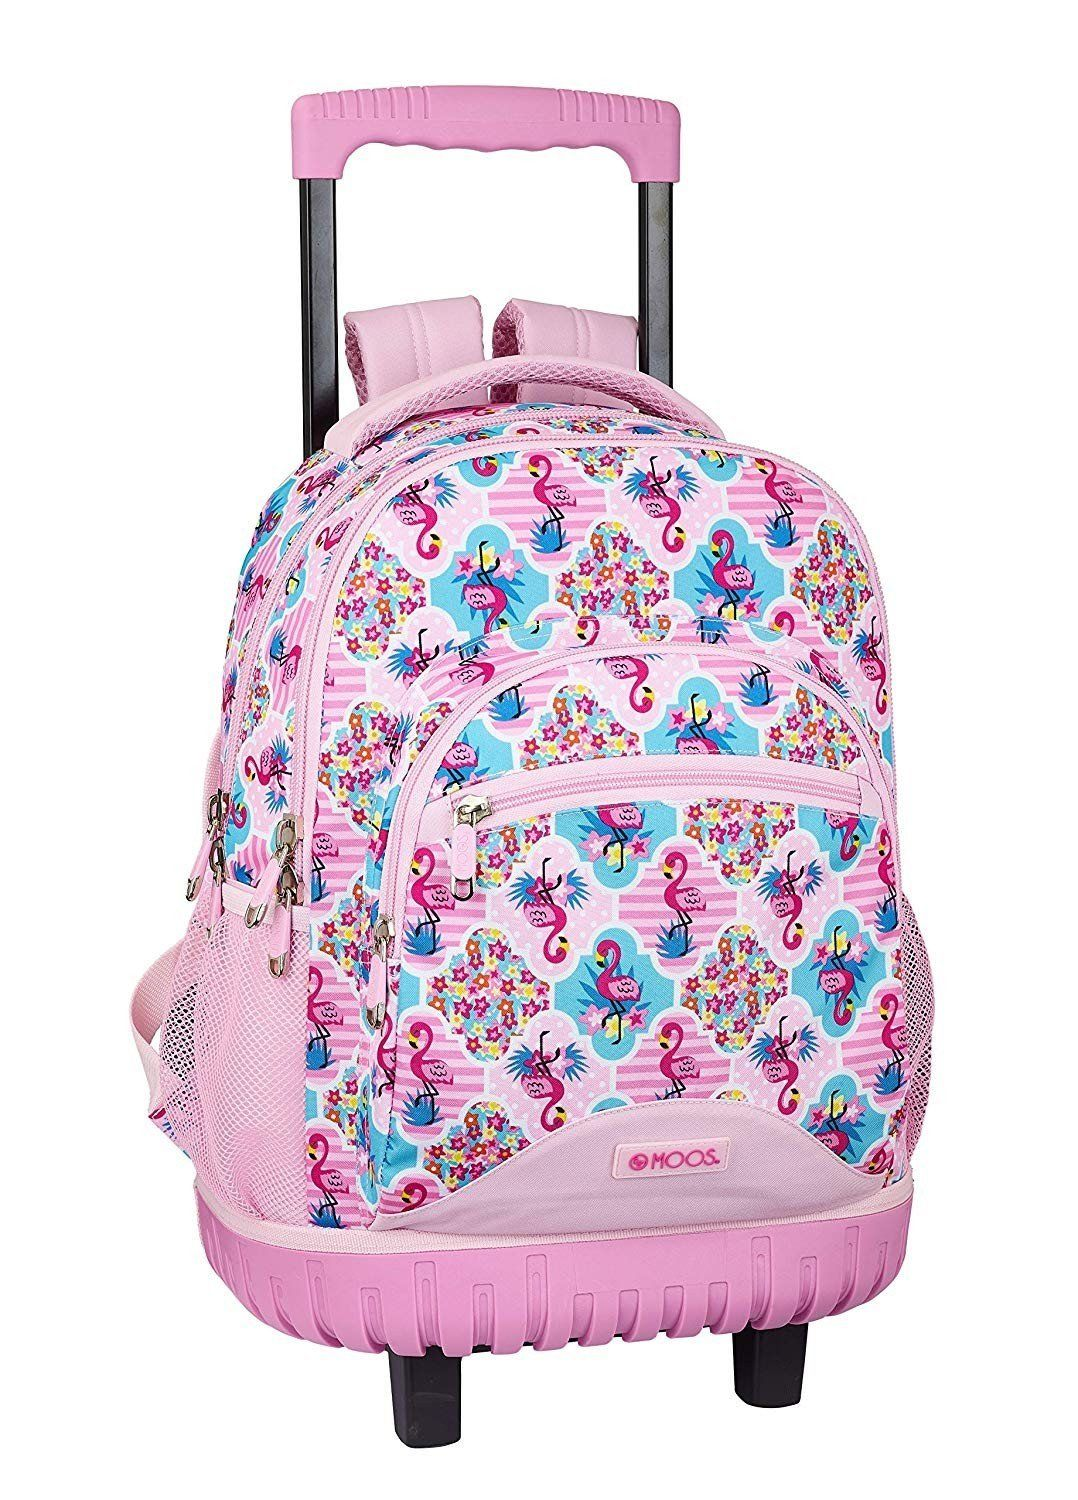 Moos Flamingo Pink Large Rucksack Trolley Bag - TOYBOX Toy Shop